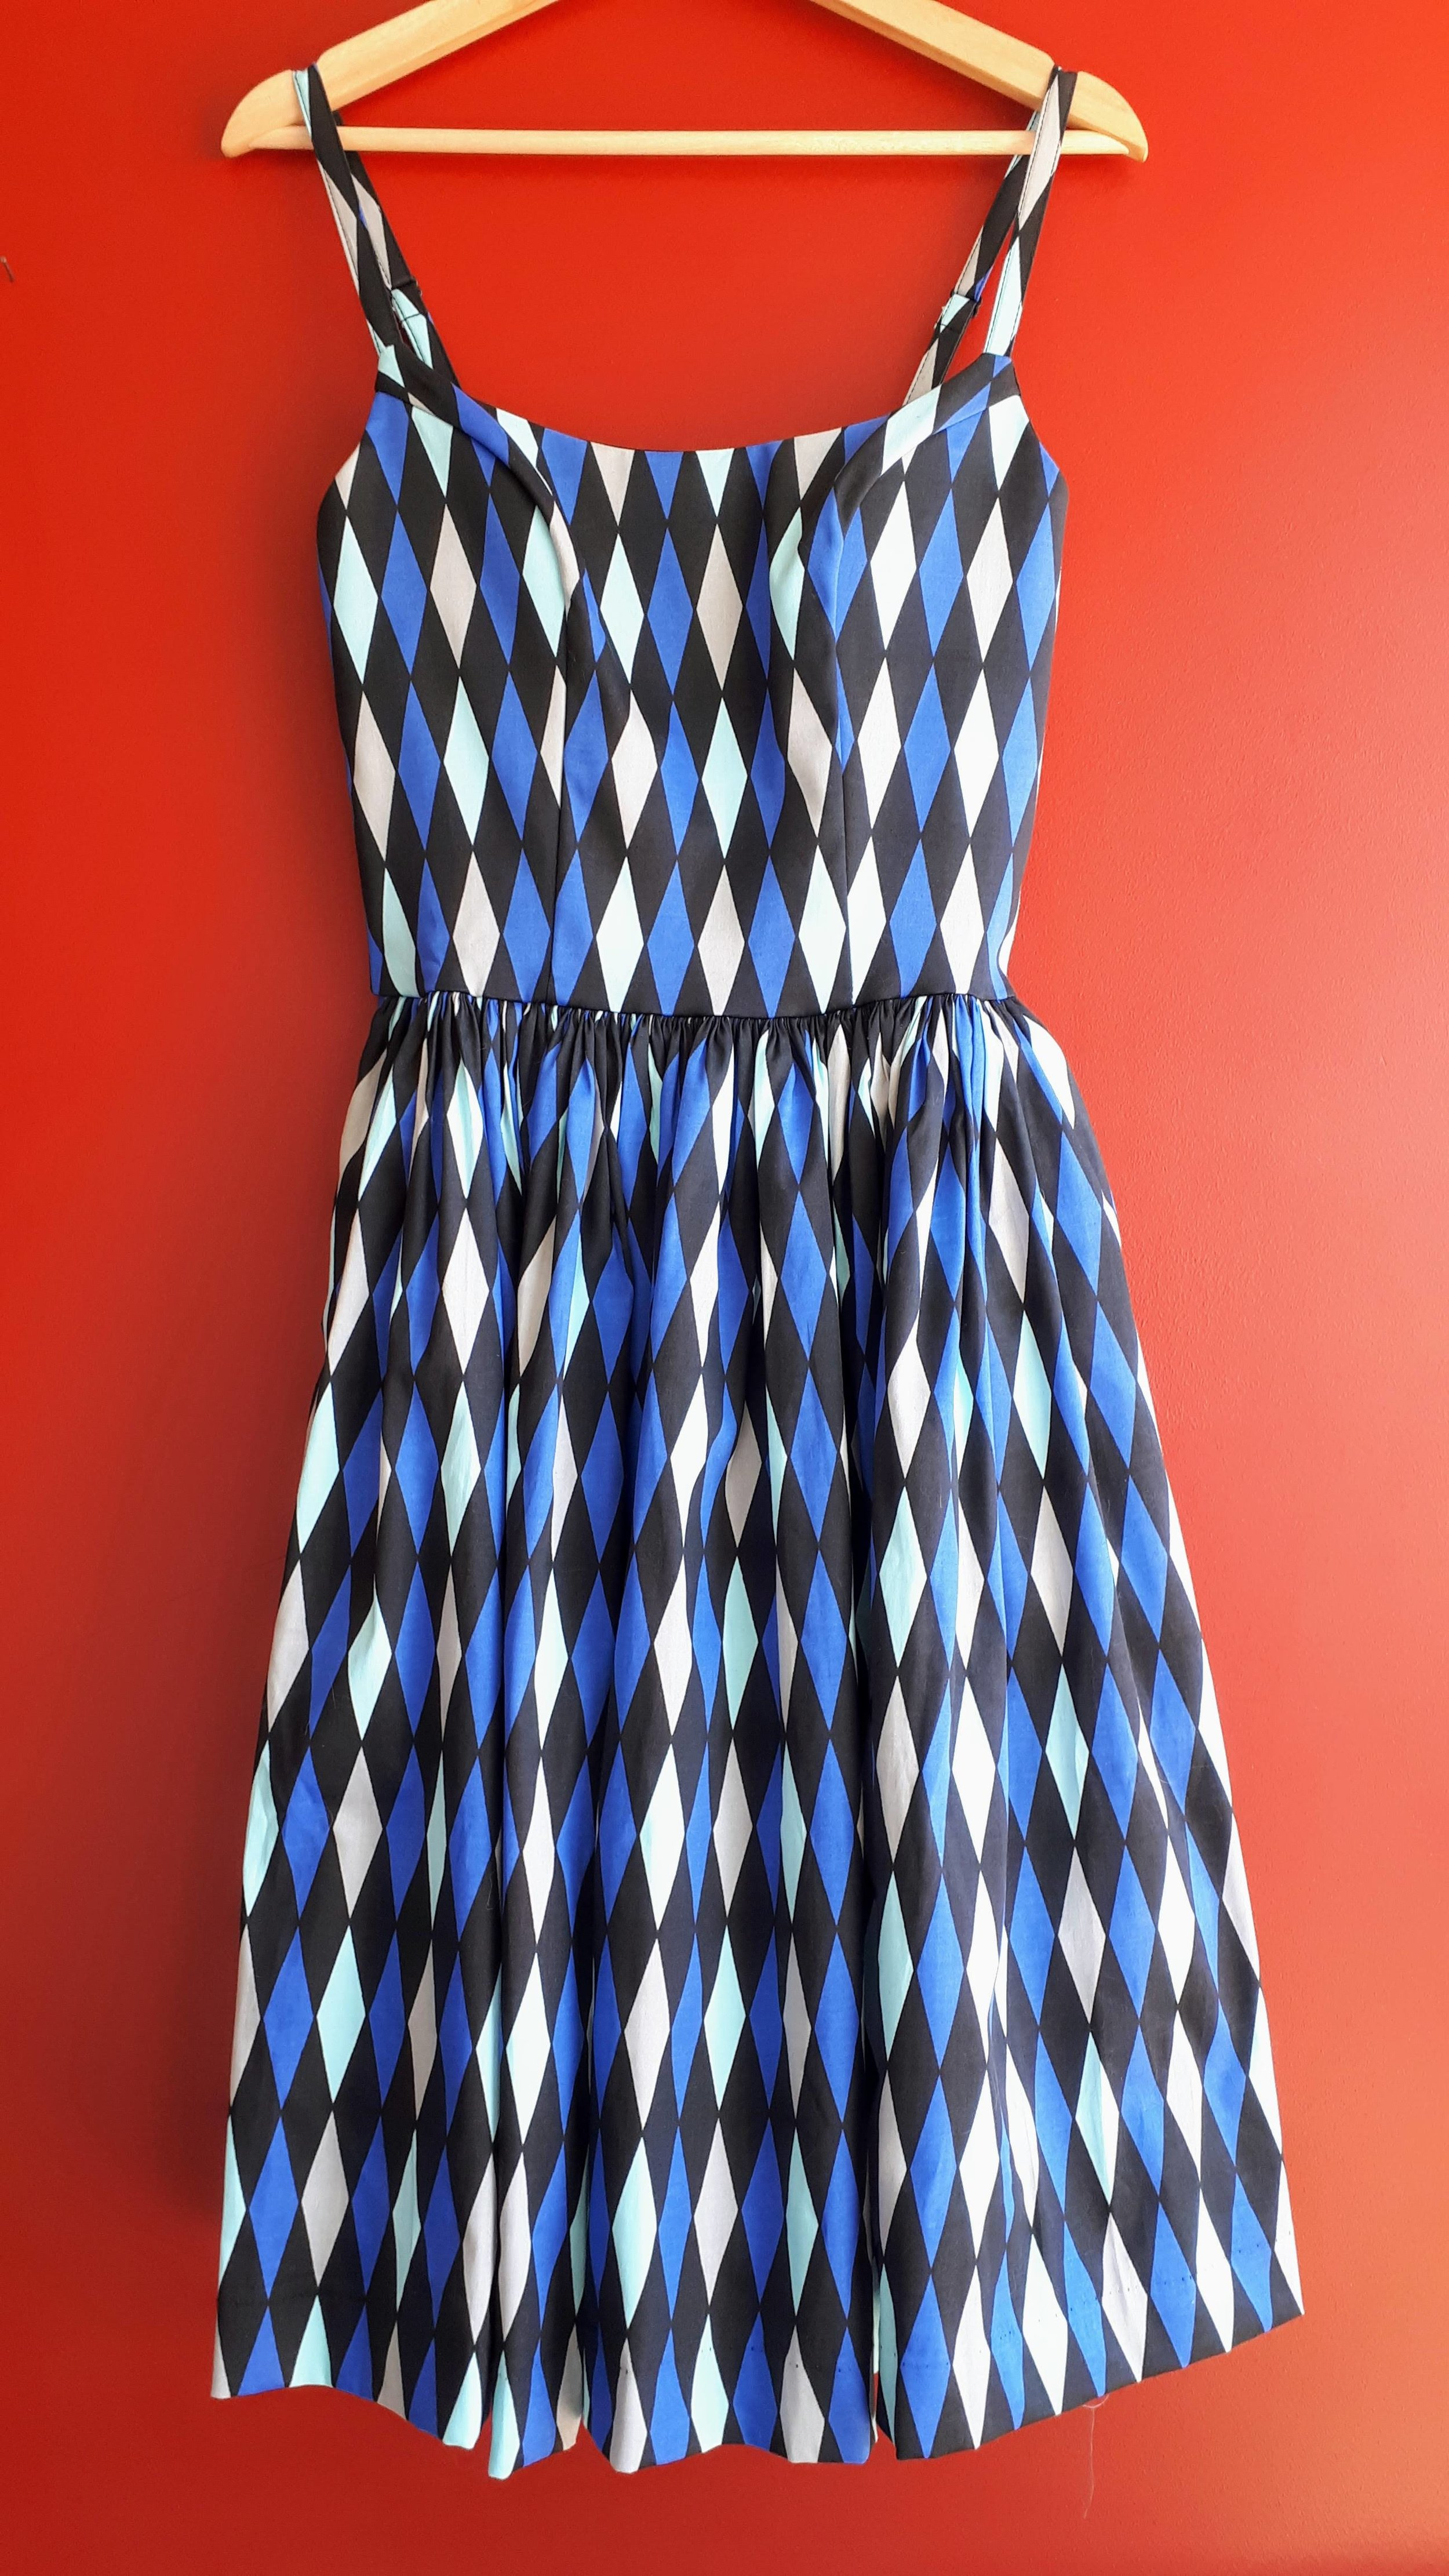 Pinup Couture dress (NWT); Size M, $48